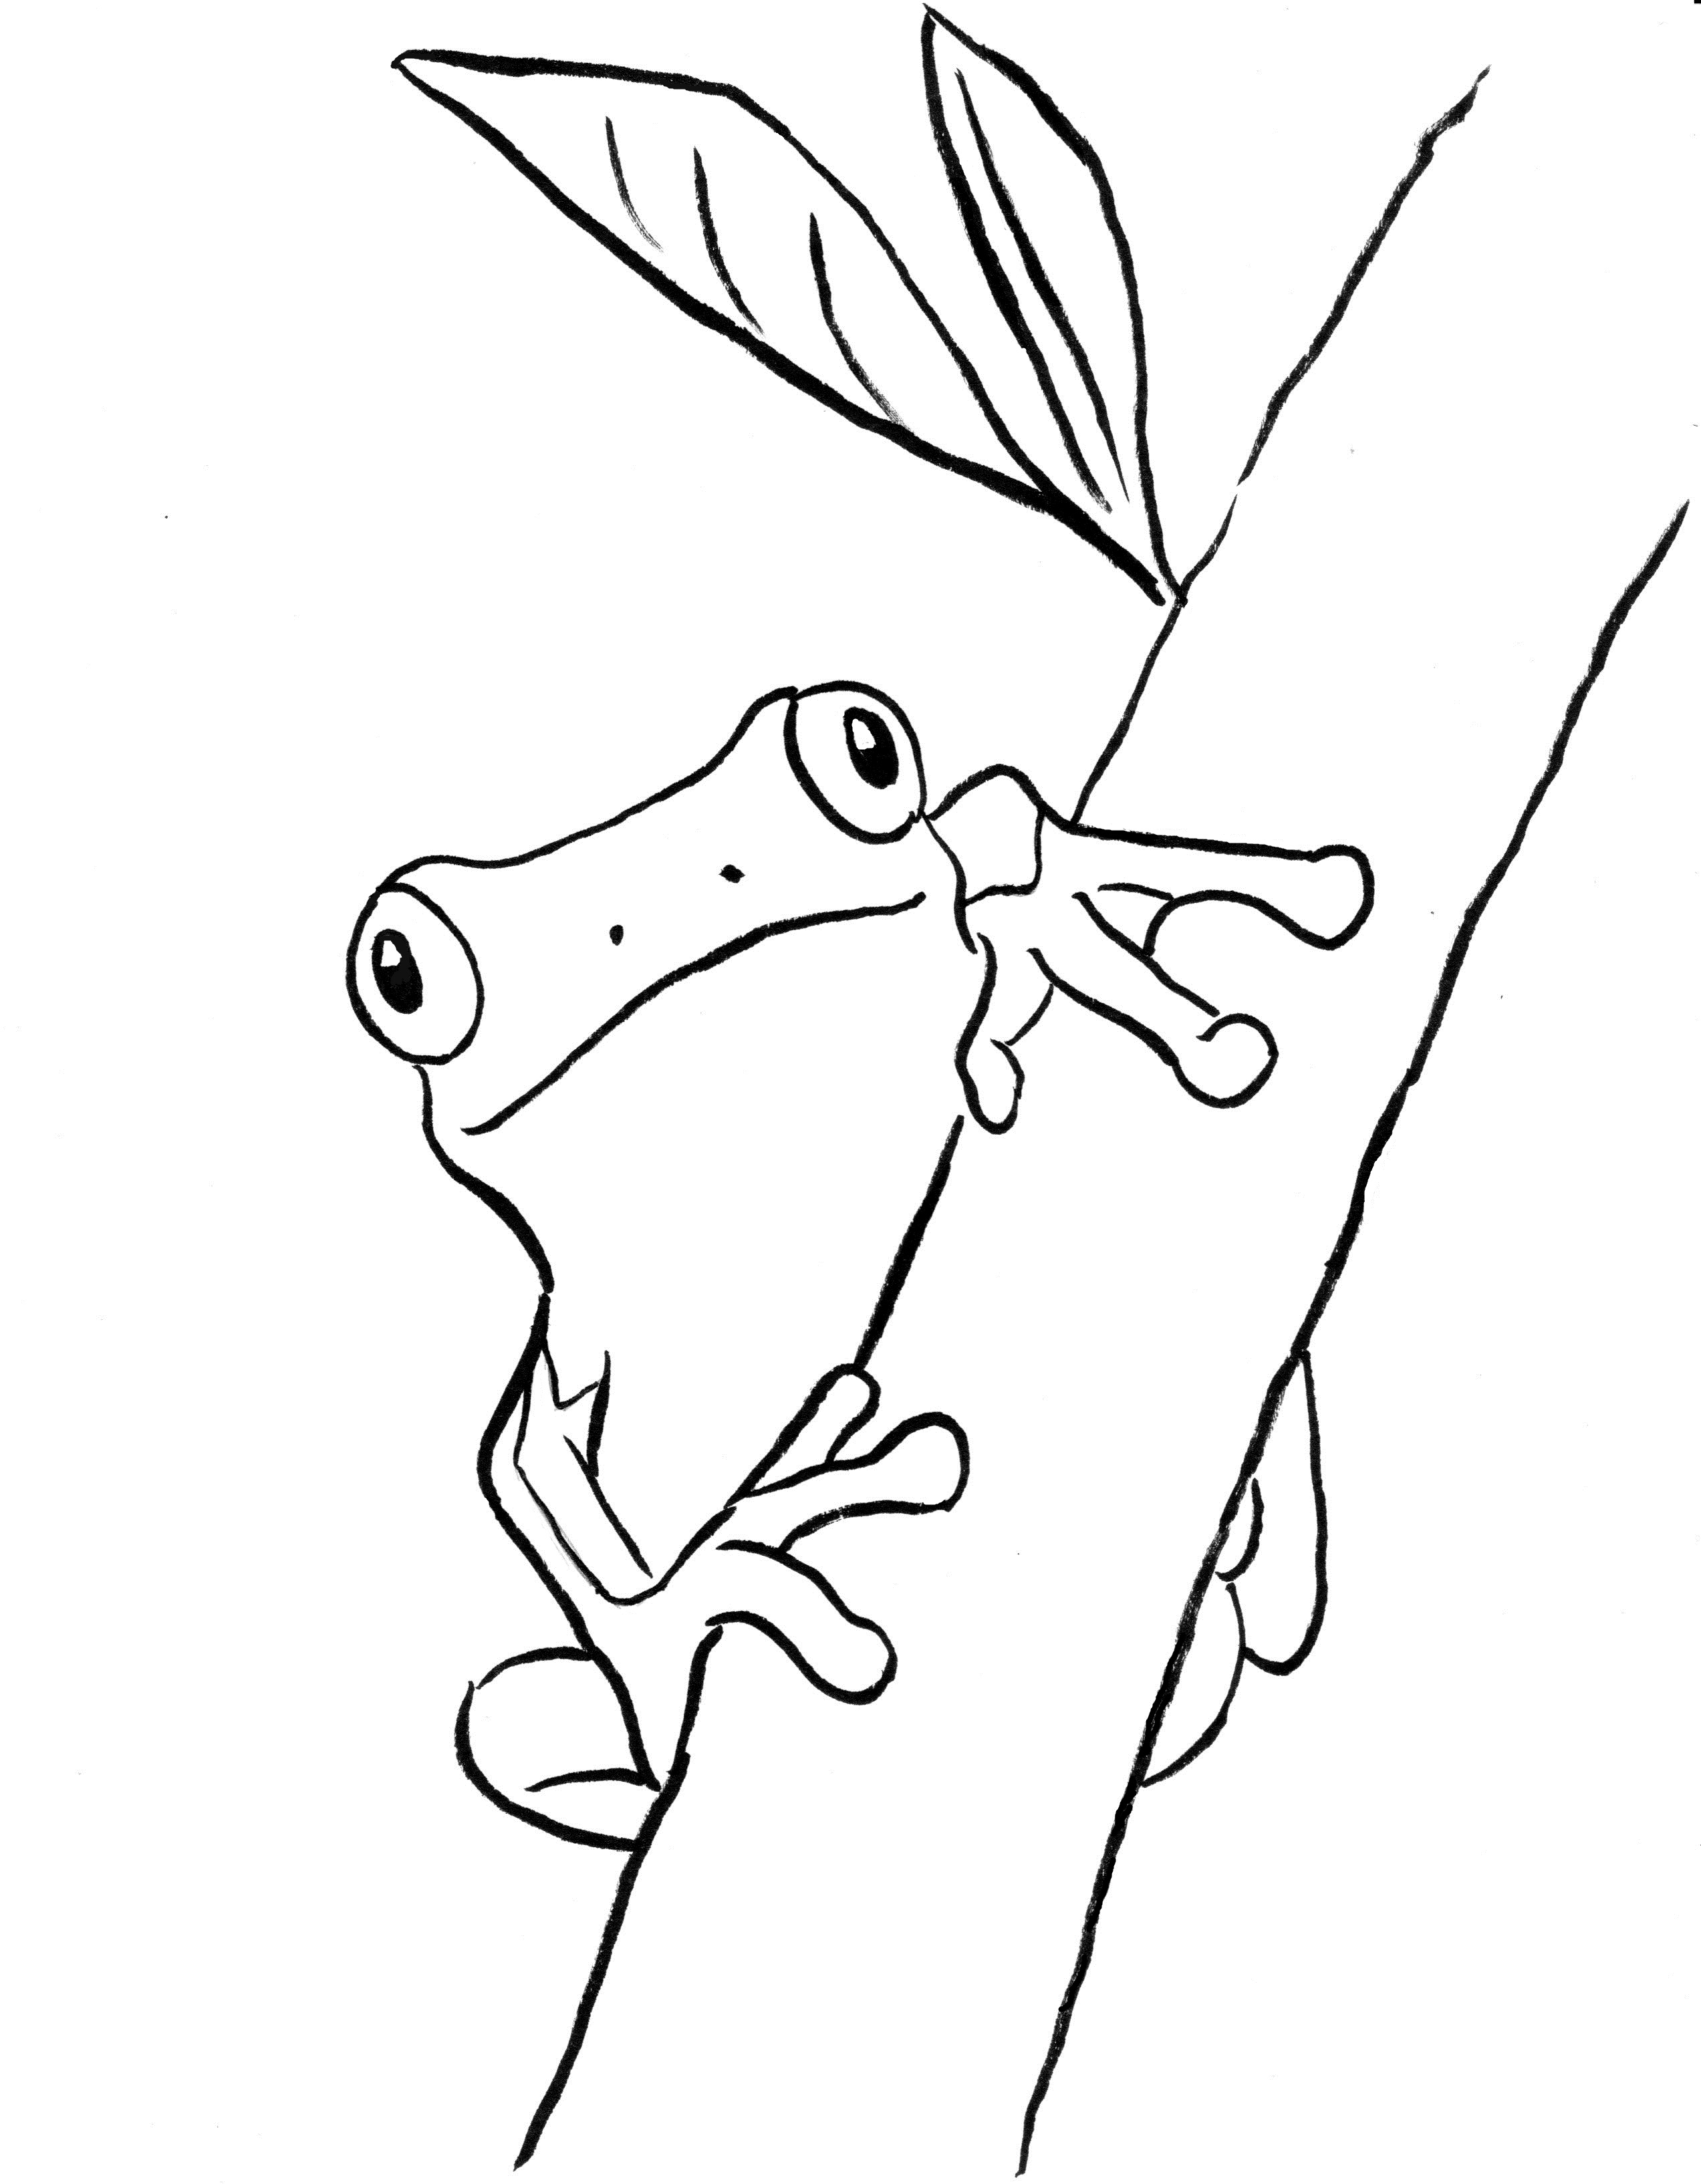 green tree frog coloring page tree frog coloring pages free download on clipartmag page coloring frog tree green